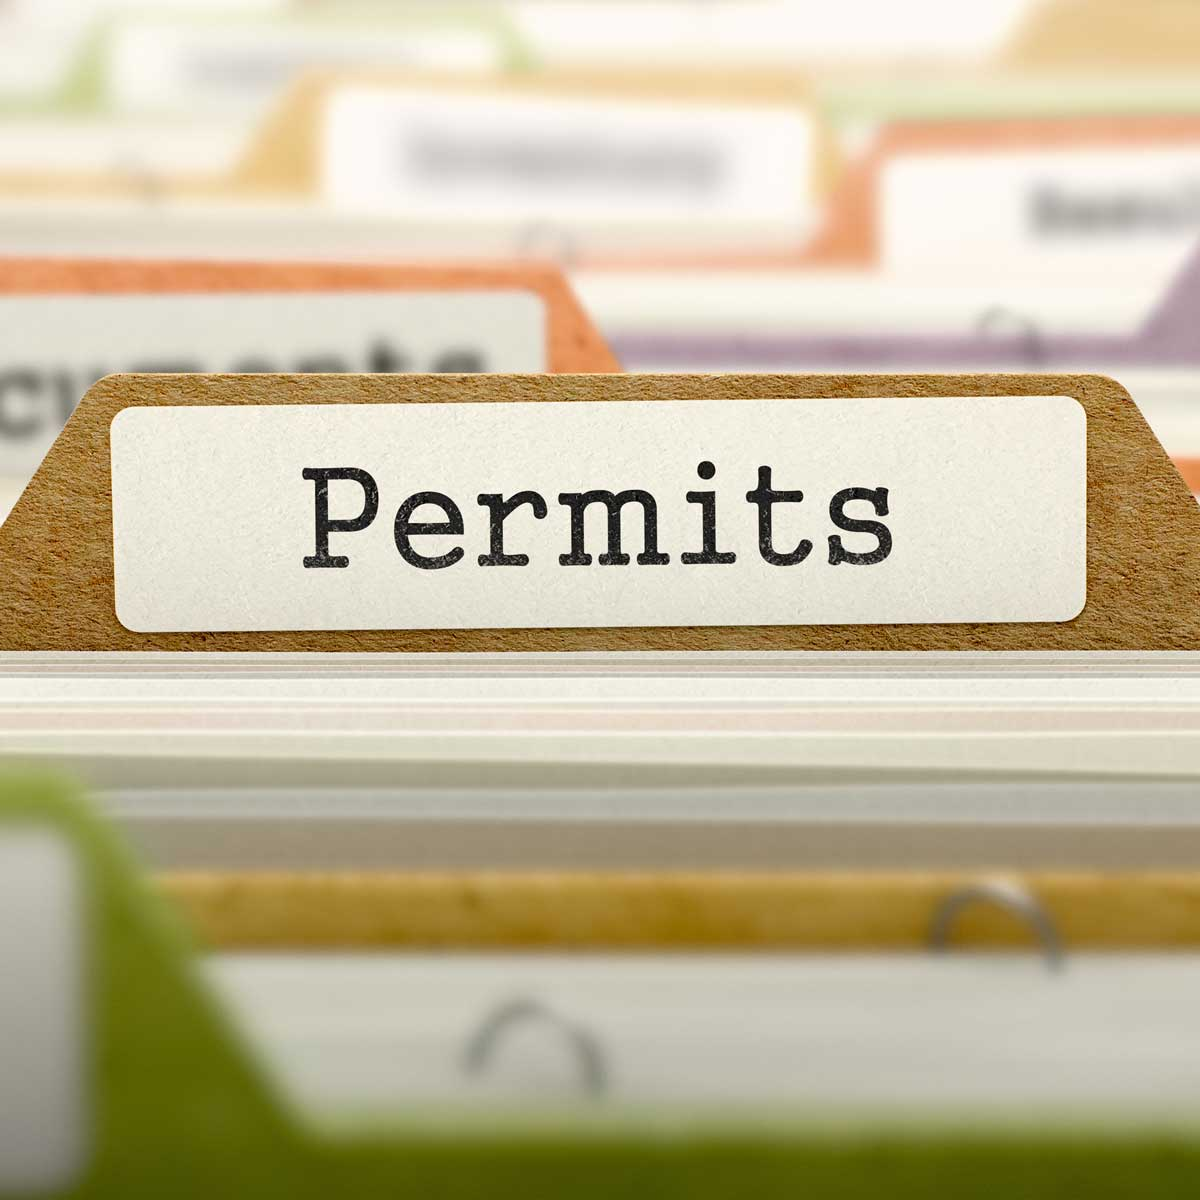 aircraft modification services stc twenty one permit to fly